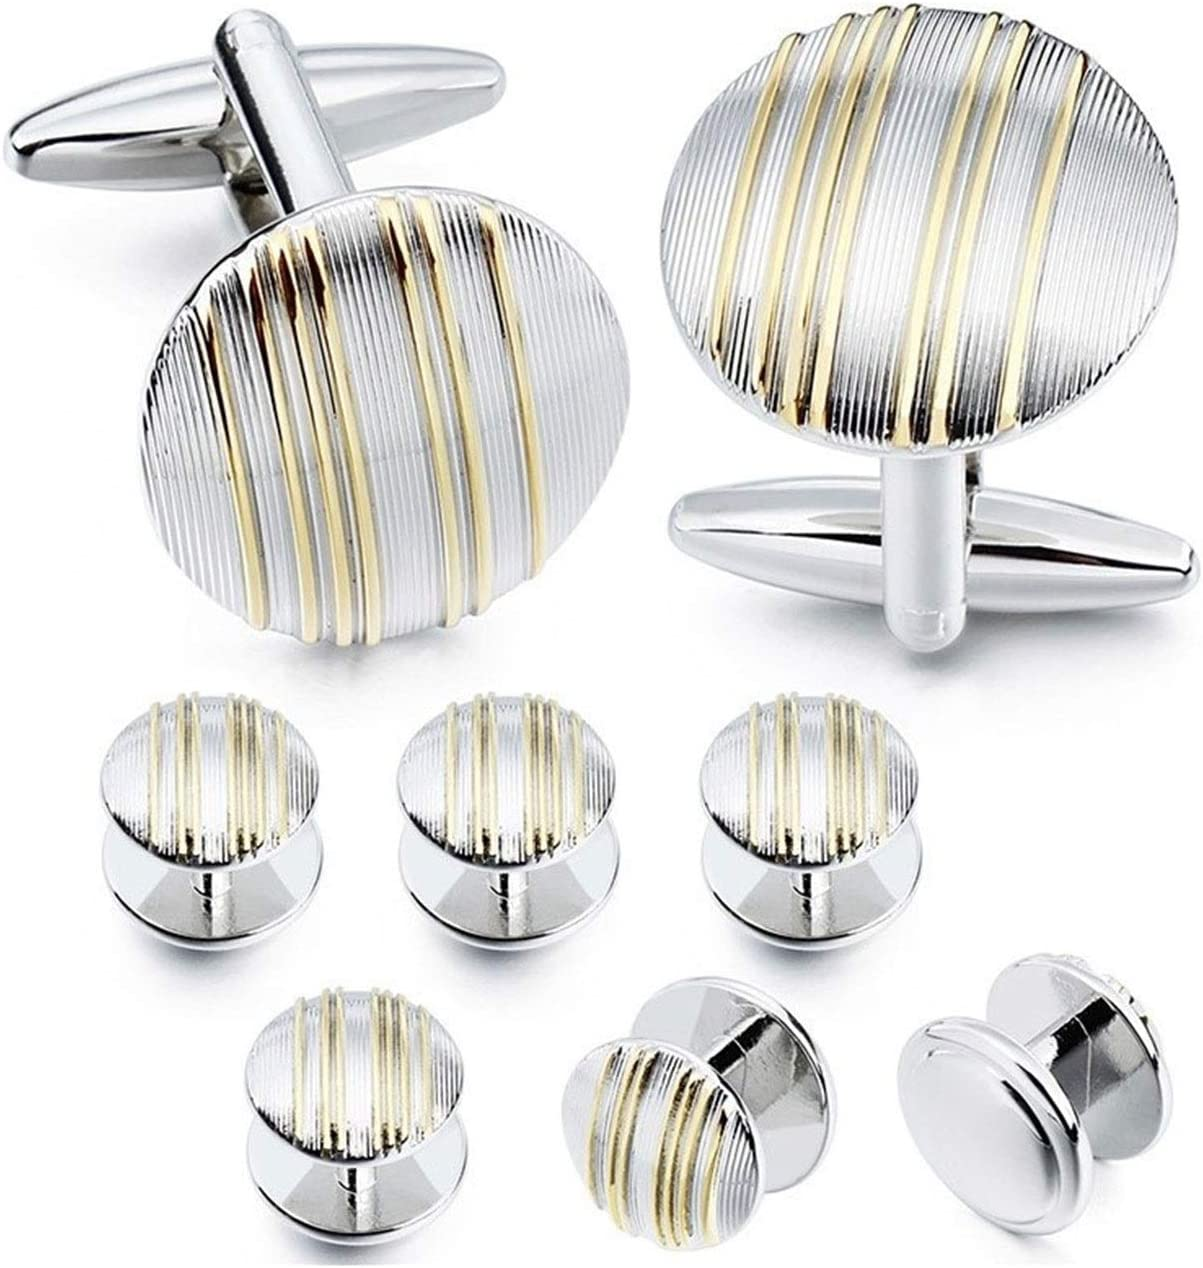 Classic Mental Round Cufflinks with Golden Stripes Funny Cuff Inks and Studs Set for Men Tuxedo Luxury Gift for Party (Metal Color : Round with 6 Studs)